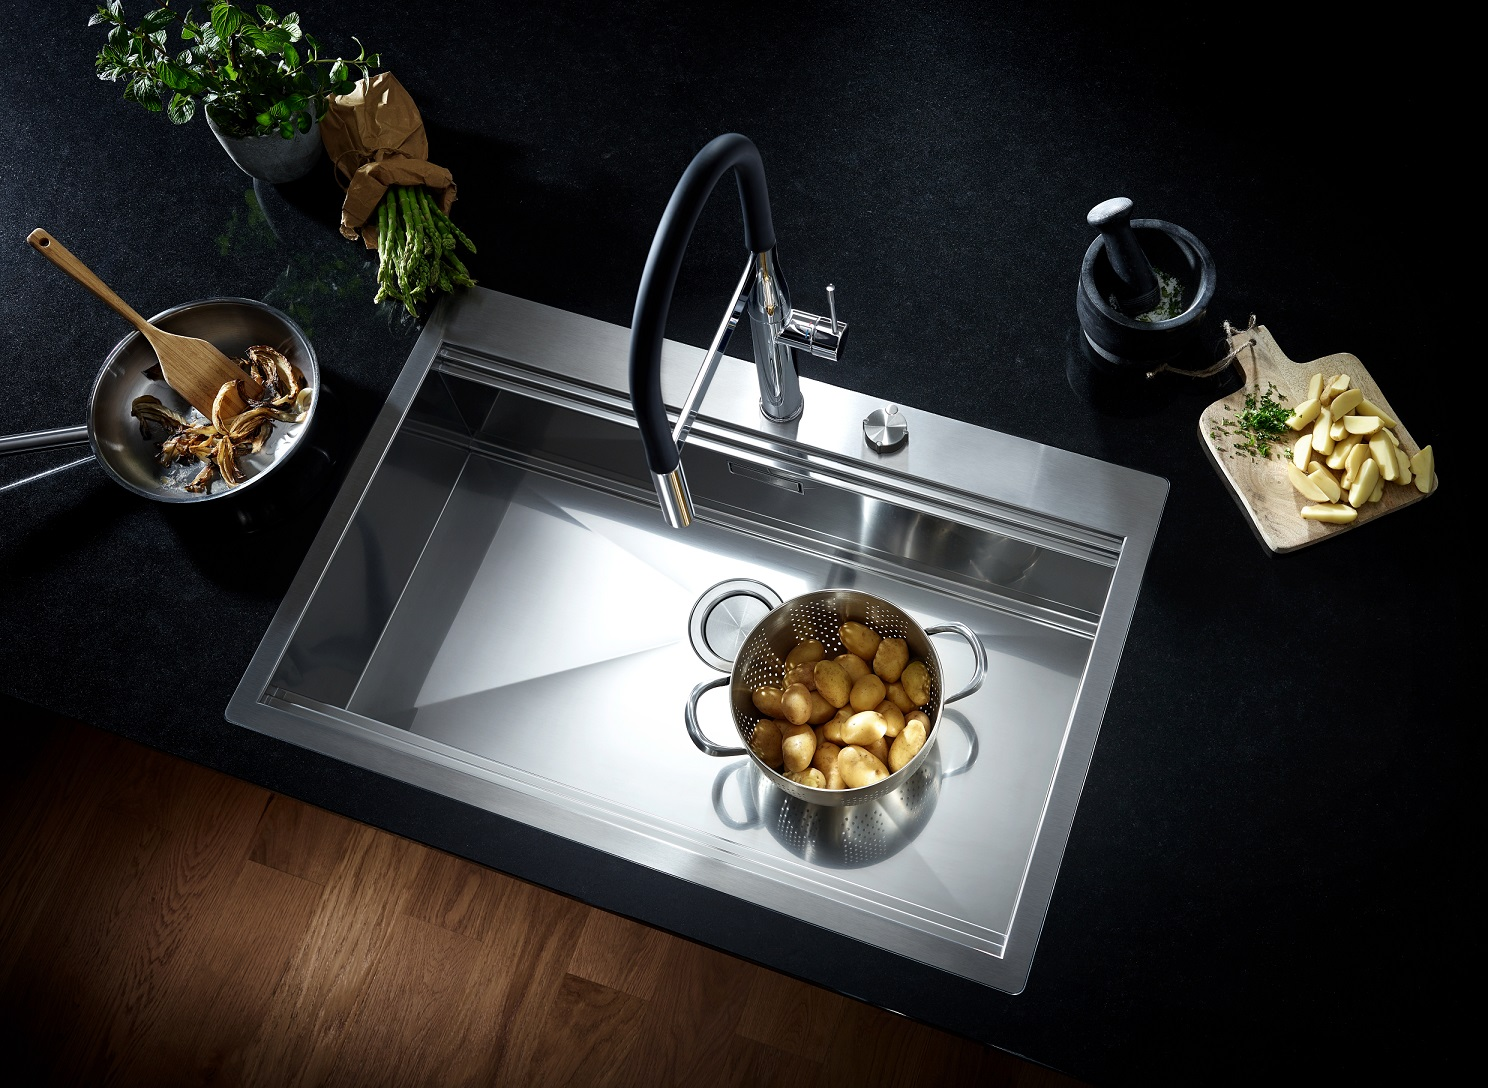 GROHE launches new kitchen sinks - Design Middle East